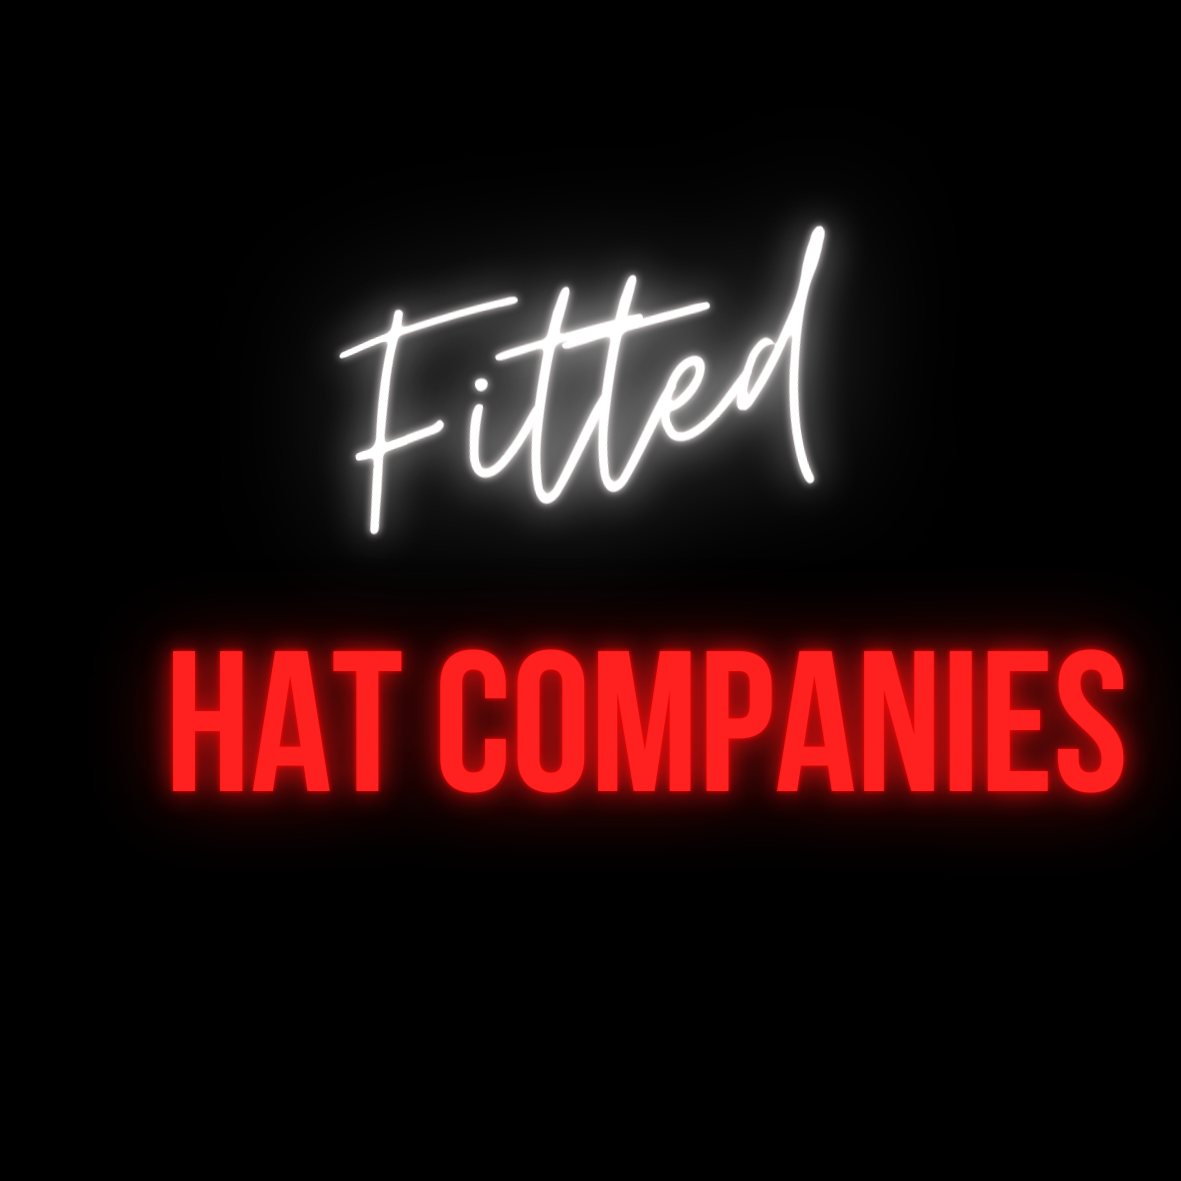 fitted hat companies